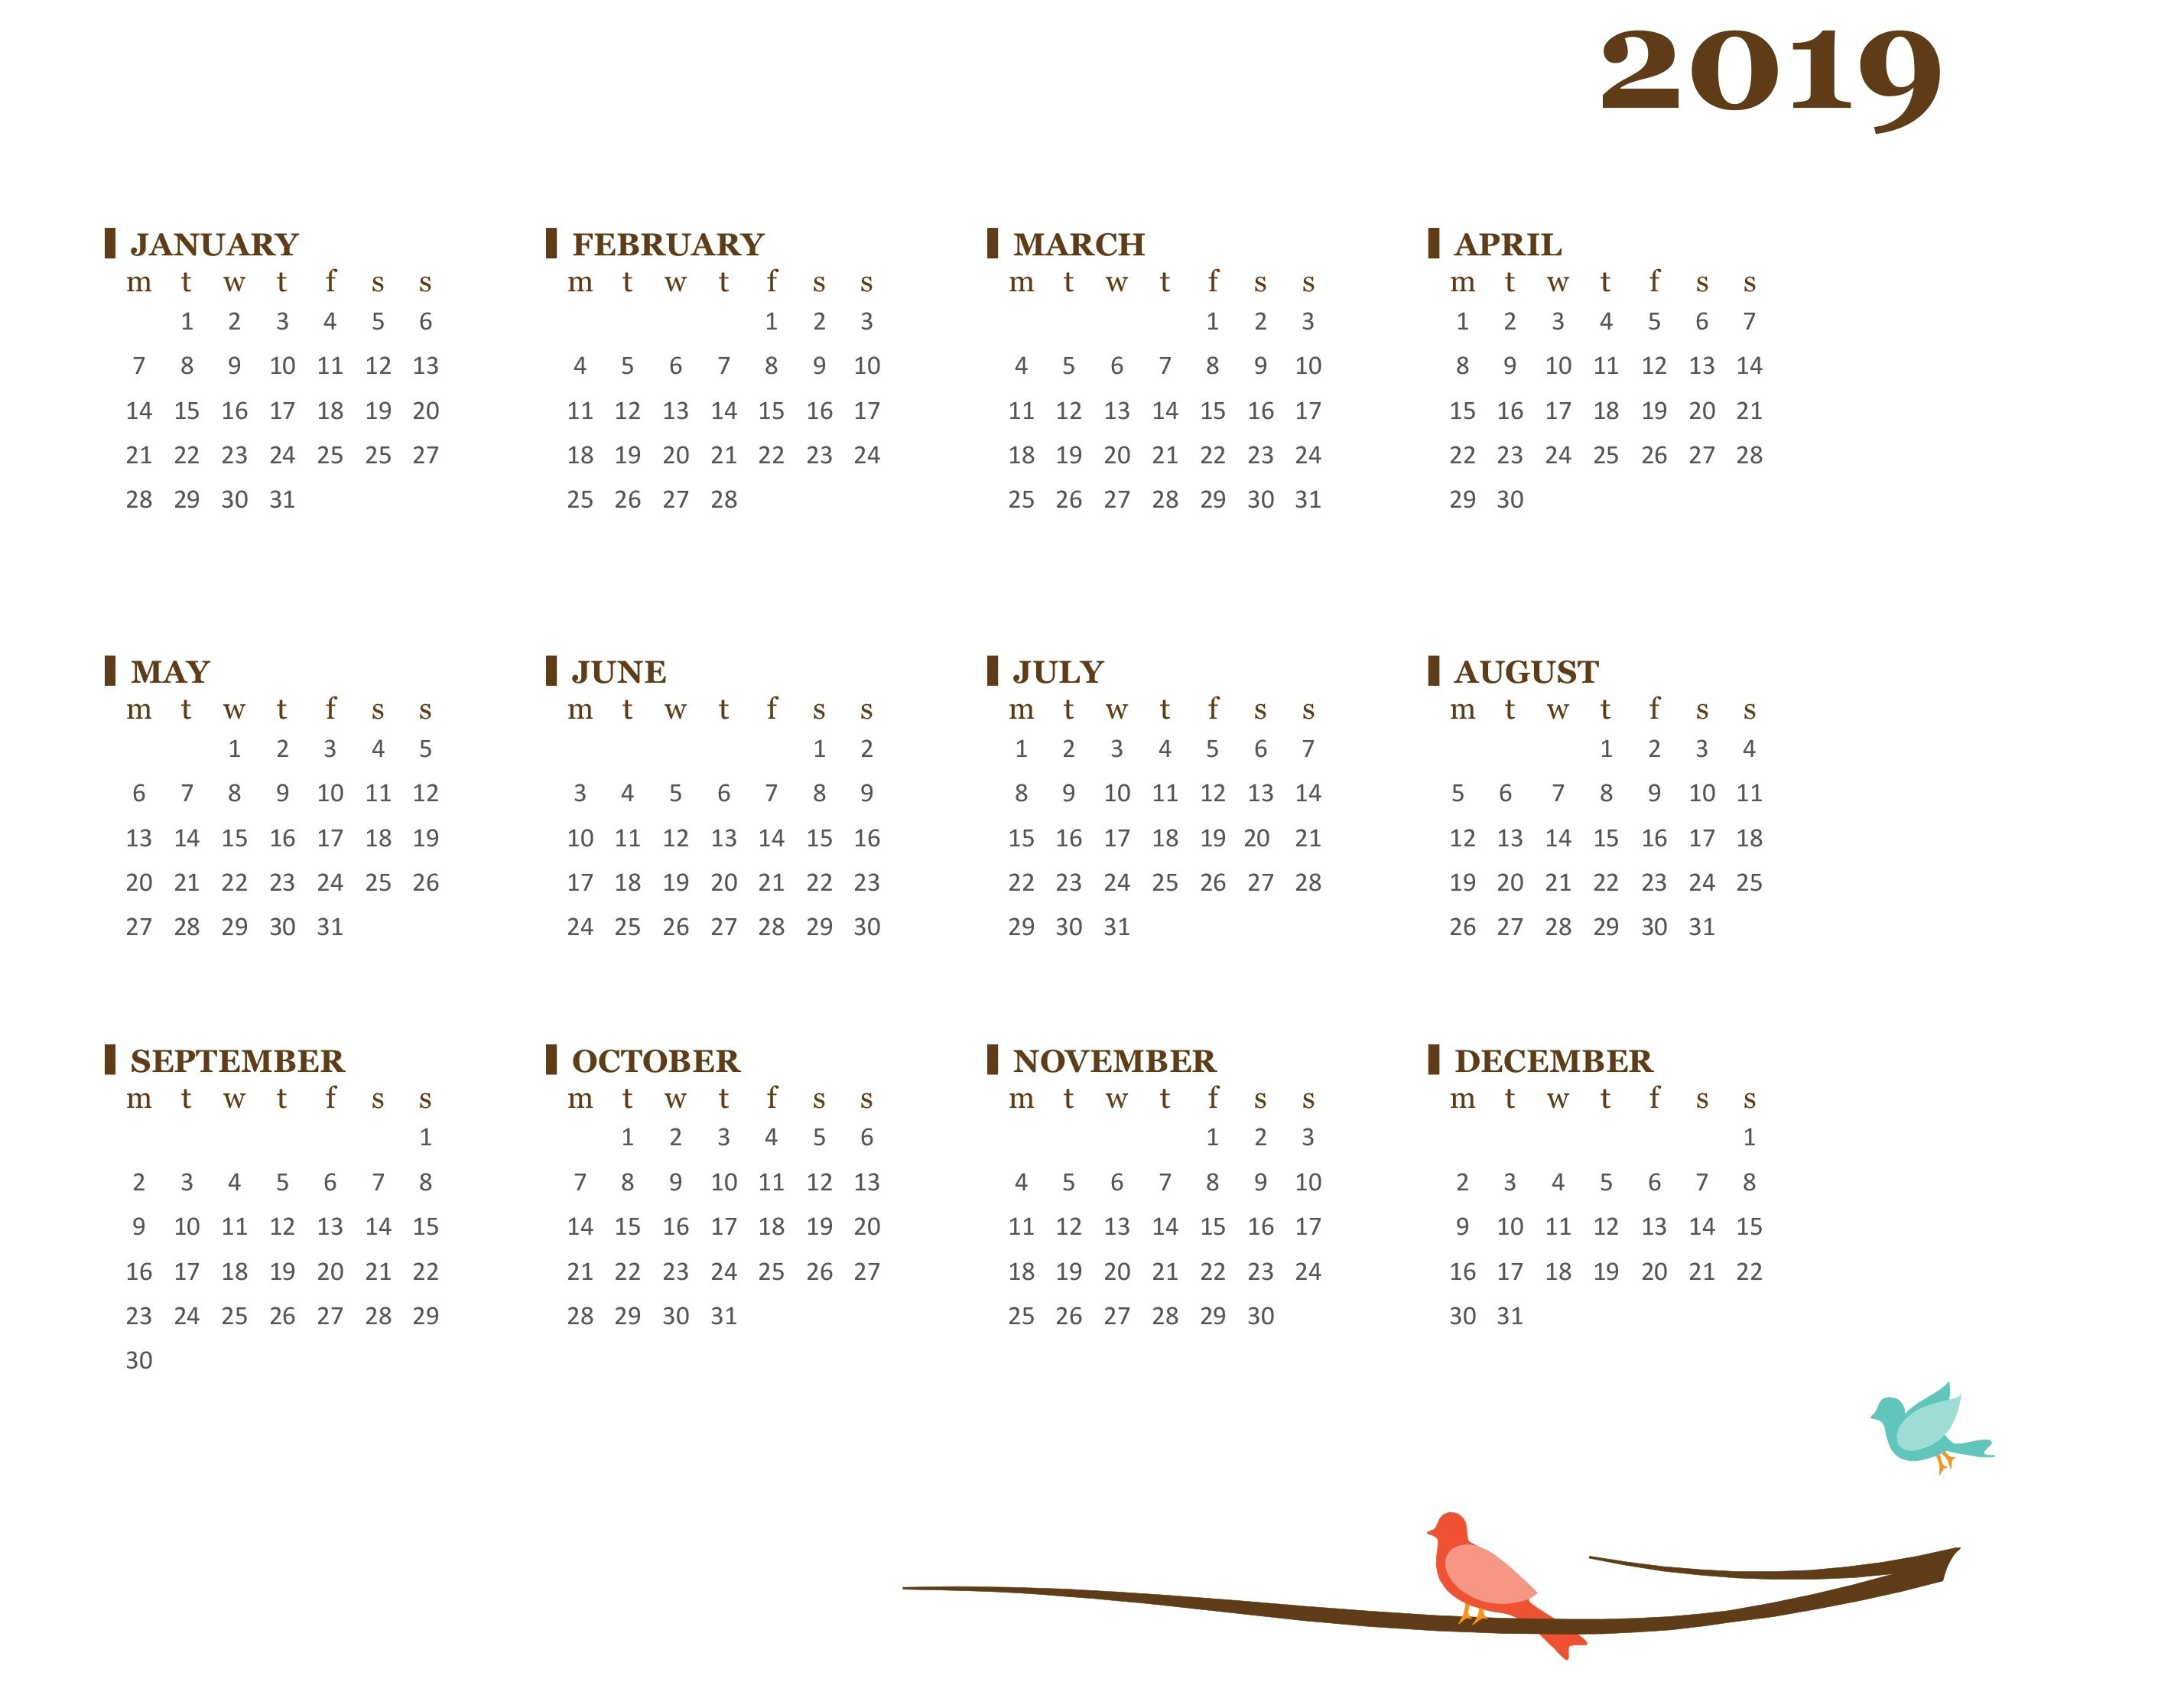 2019 Yearly Calendar (Mon-Sun) Calendar 2019 Picture